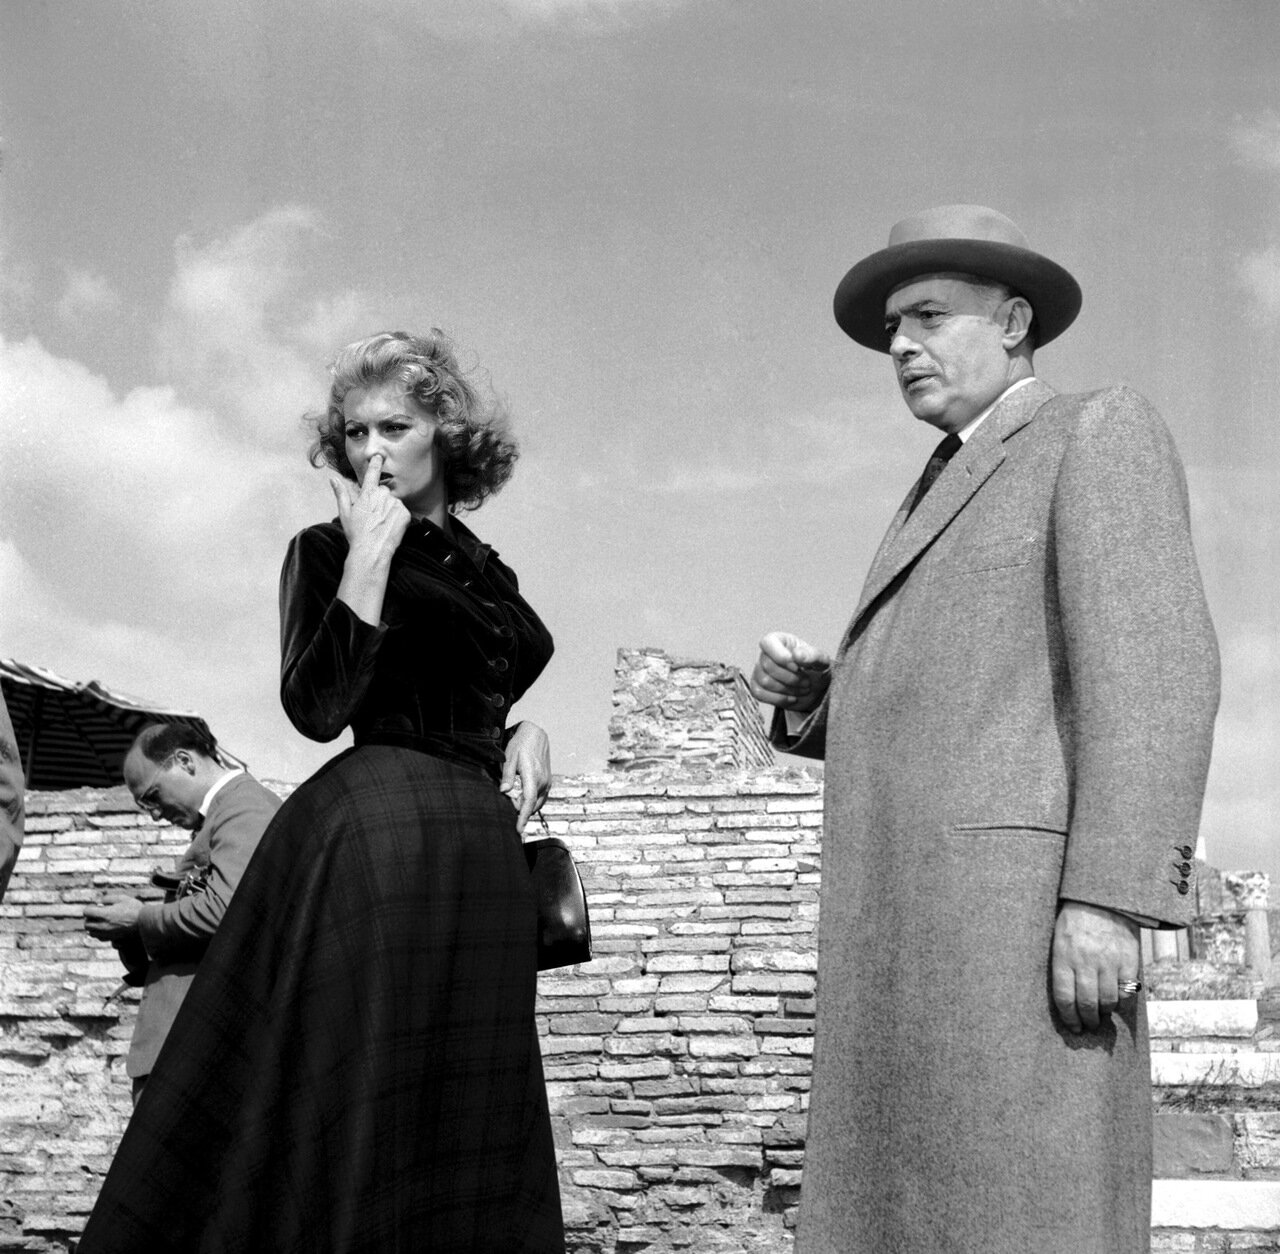 1955: Italian film actress Sophia Loren on location at Ostia Antica for the filming of 'La Fortuna di Essere Donna' with the French actor Charles Boyer (1897 - 1978).